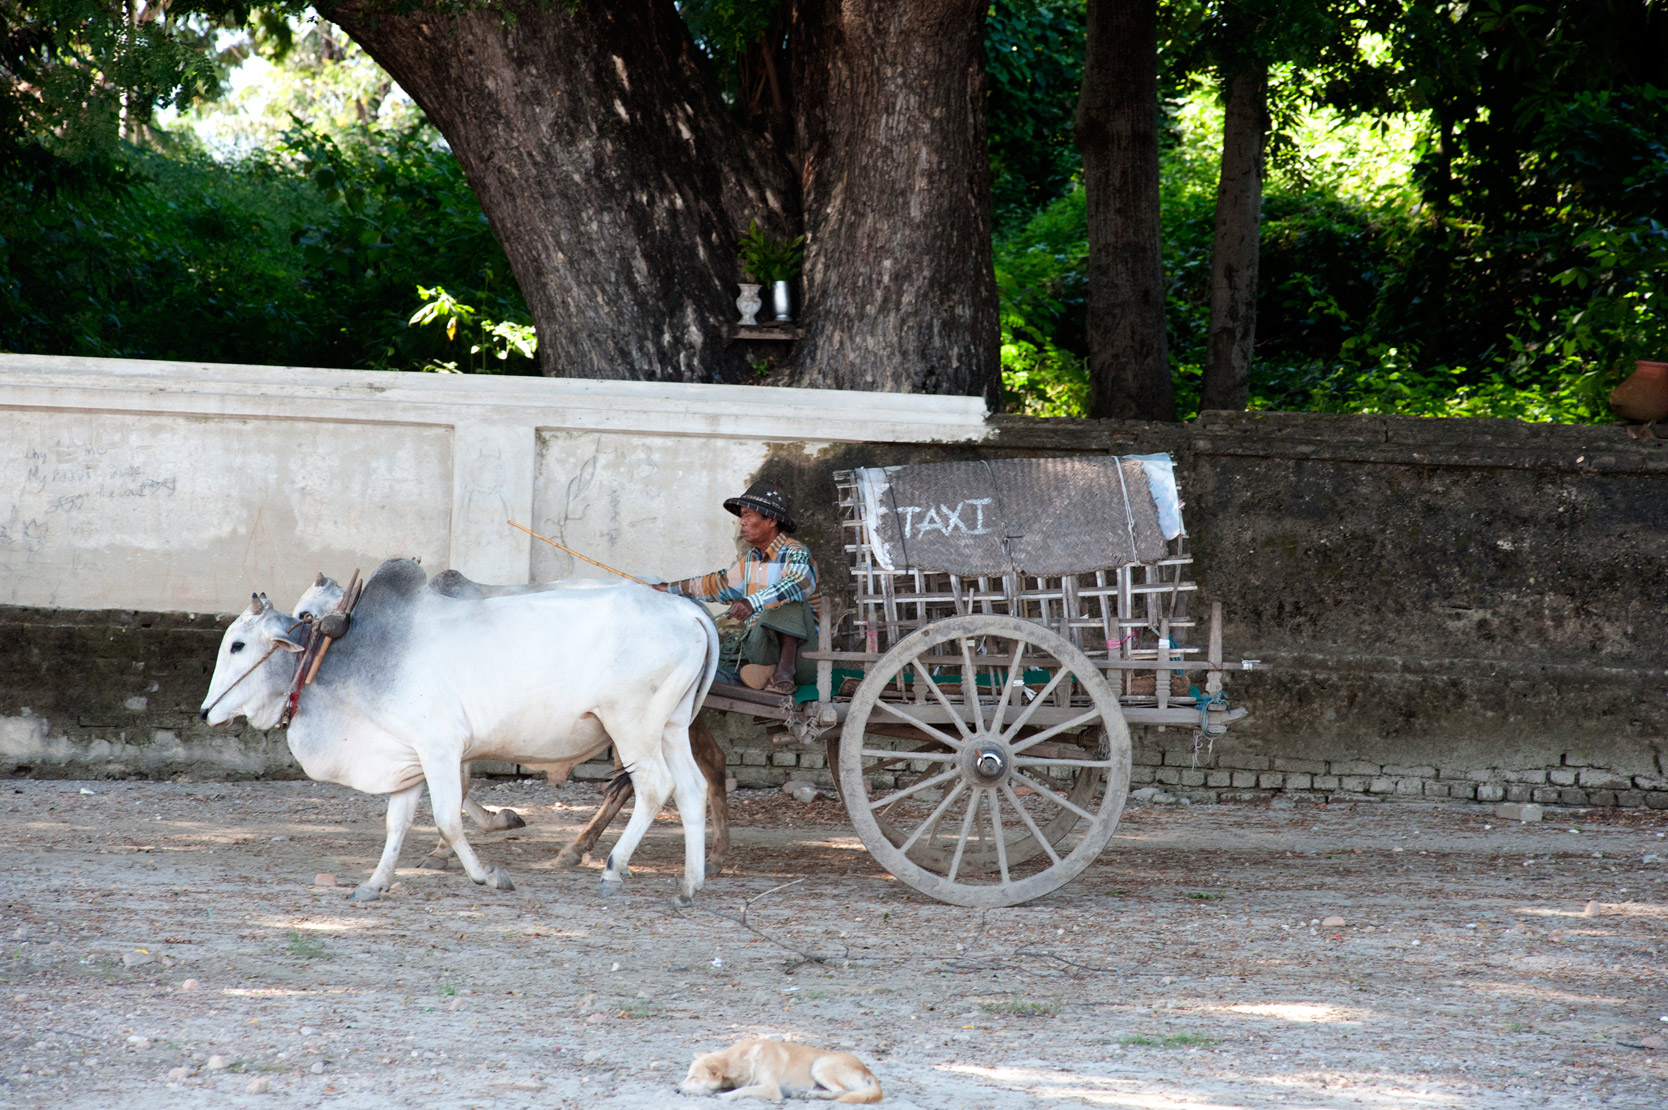 White bullock cart painted with the word 'taxi' offering rides to visiting tourists, Mingun, Mandalay.